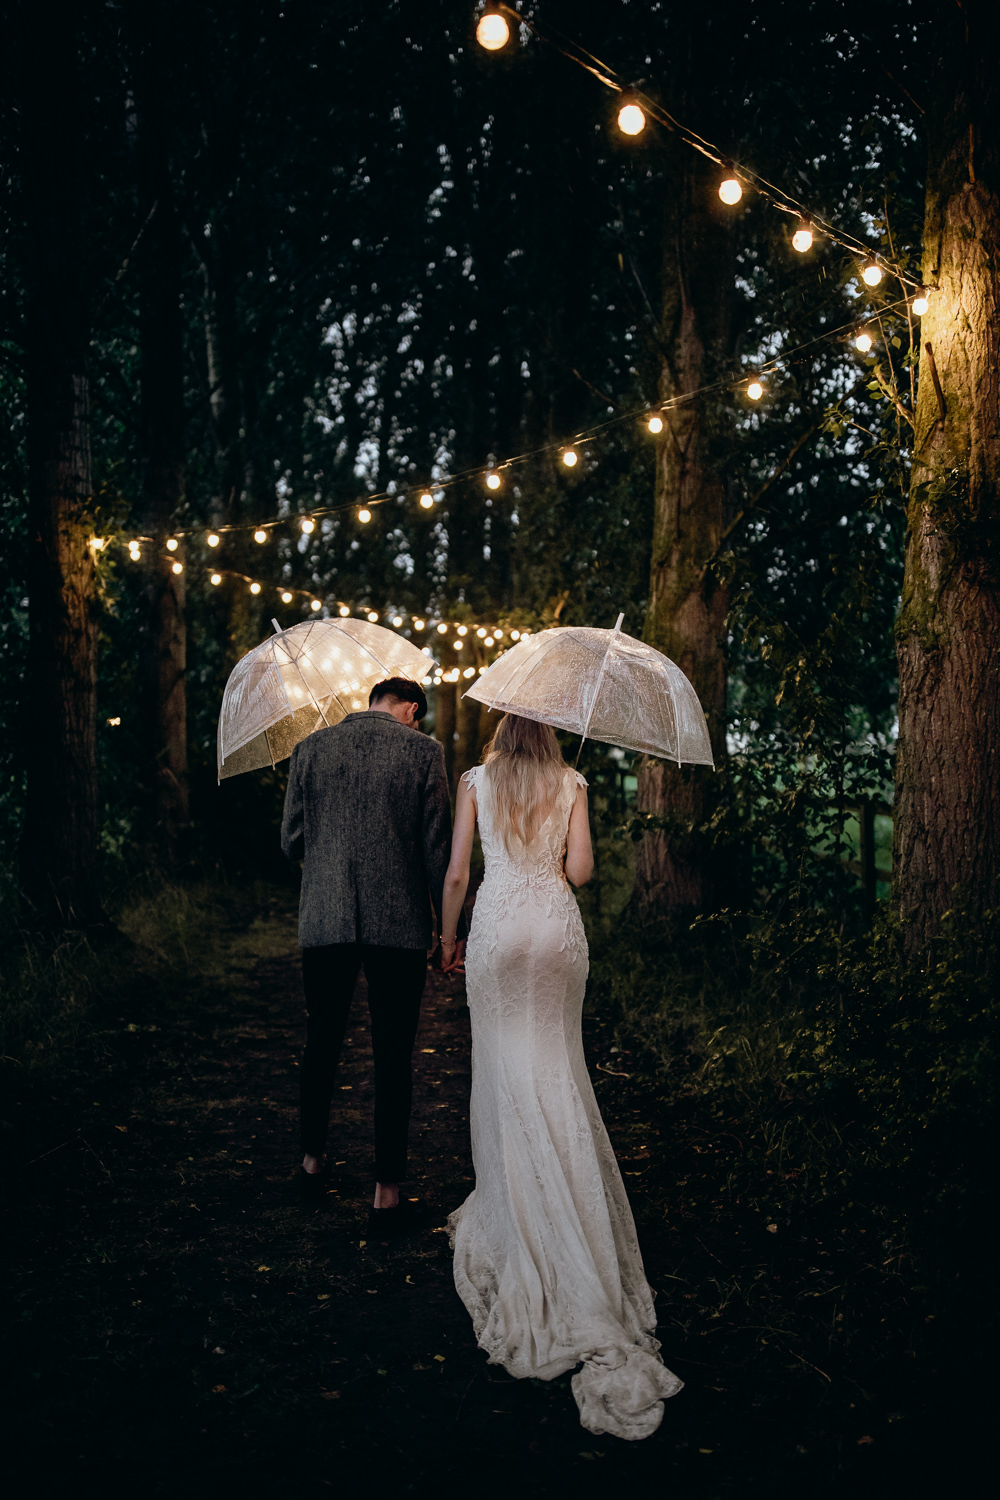 Horsley Hale Farm Wedding Thyme Lane Photography Rainy Rain Umbrella